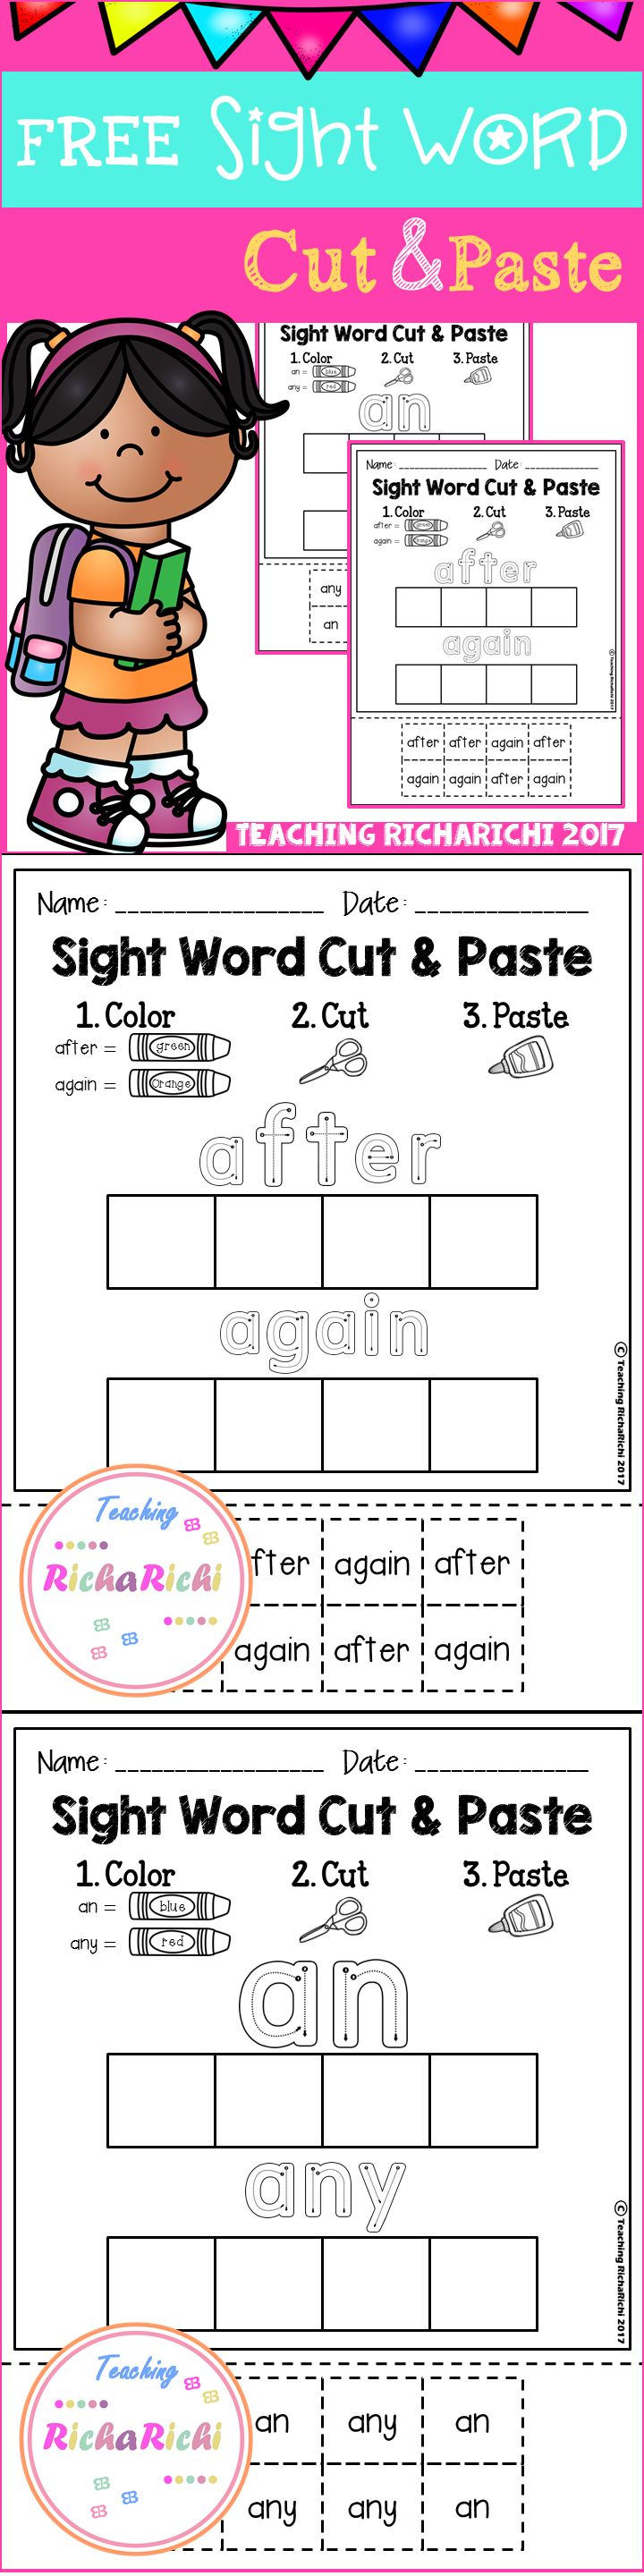 worksheet Pre K Sight Words Worksheets 10 best ideas about sight word worksheets on pinterest free cut and paste first grade inside you will find 3 pages of each page contains